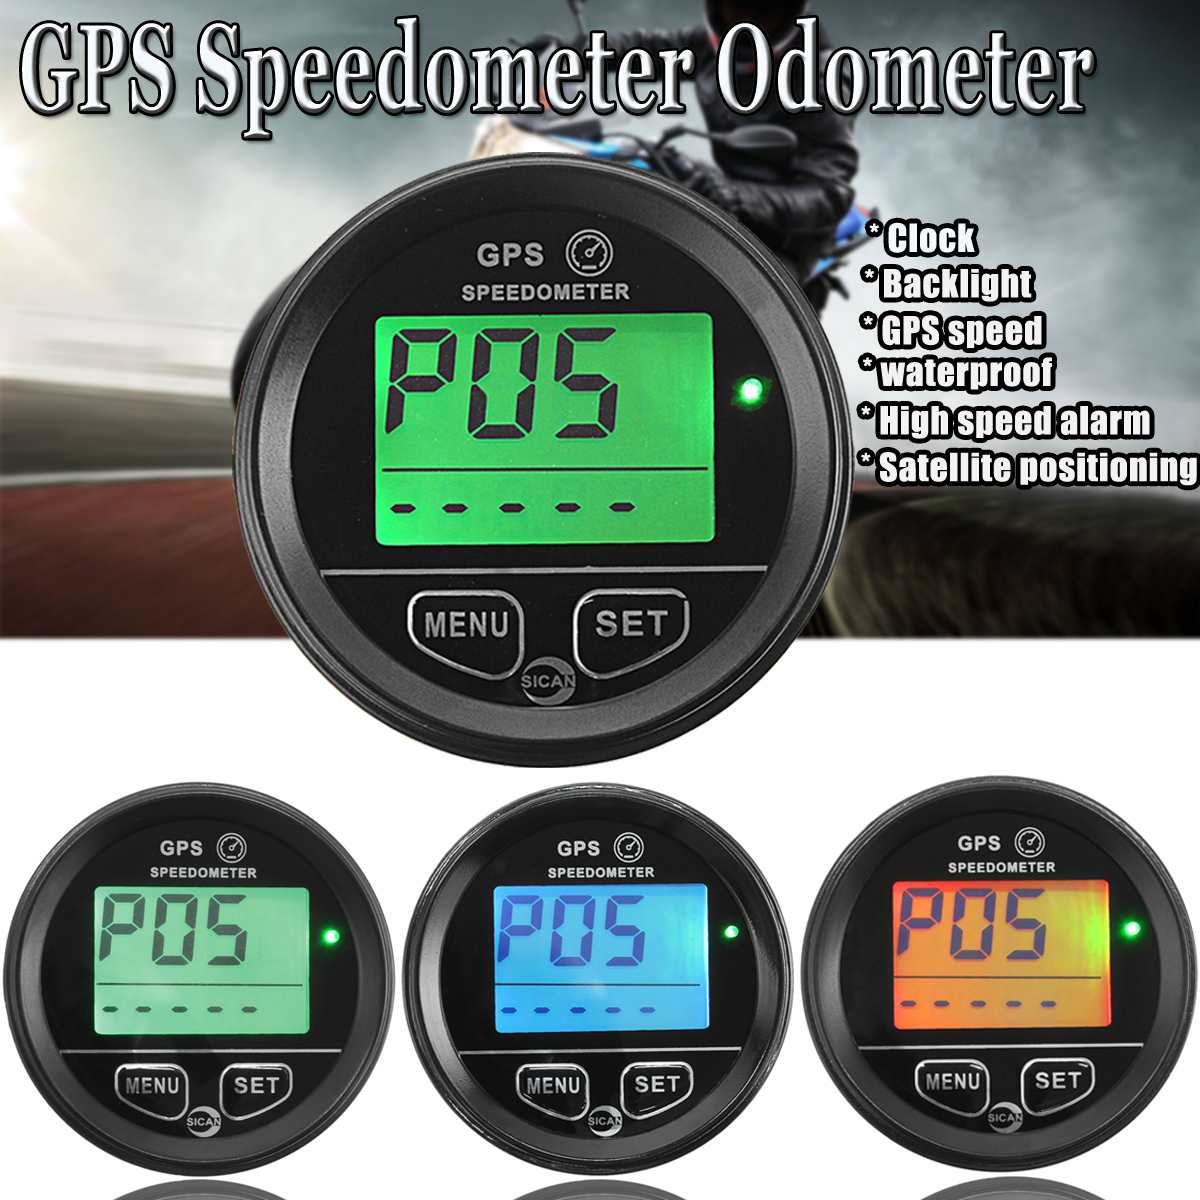 60mm Motorcycle  GPS Speedometer Odometer for Motorcycle Atv Marine Boat Buggy Golf Go Cart Truck60mm Motorcycle  GPS Speedometer Odometer for Motorcycle Atv Marine Boat Buggy Golf Go Cart Truck